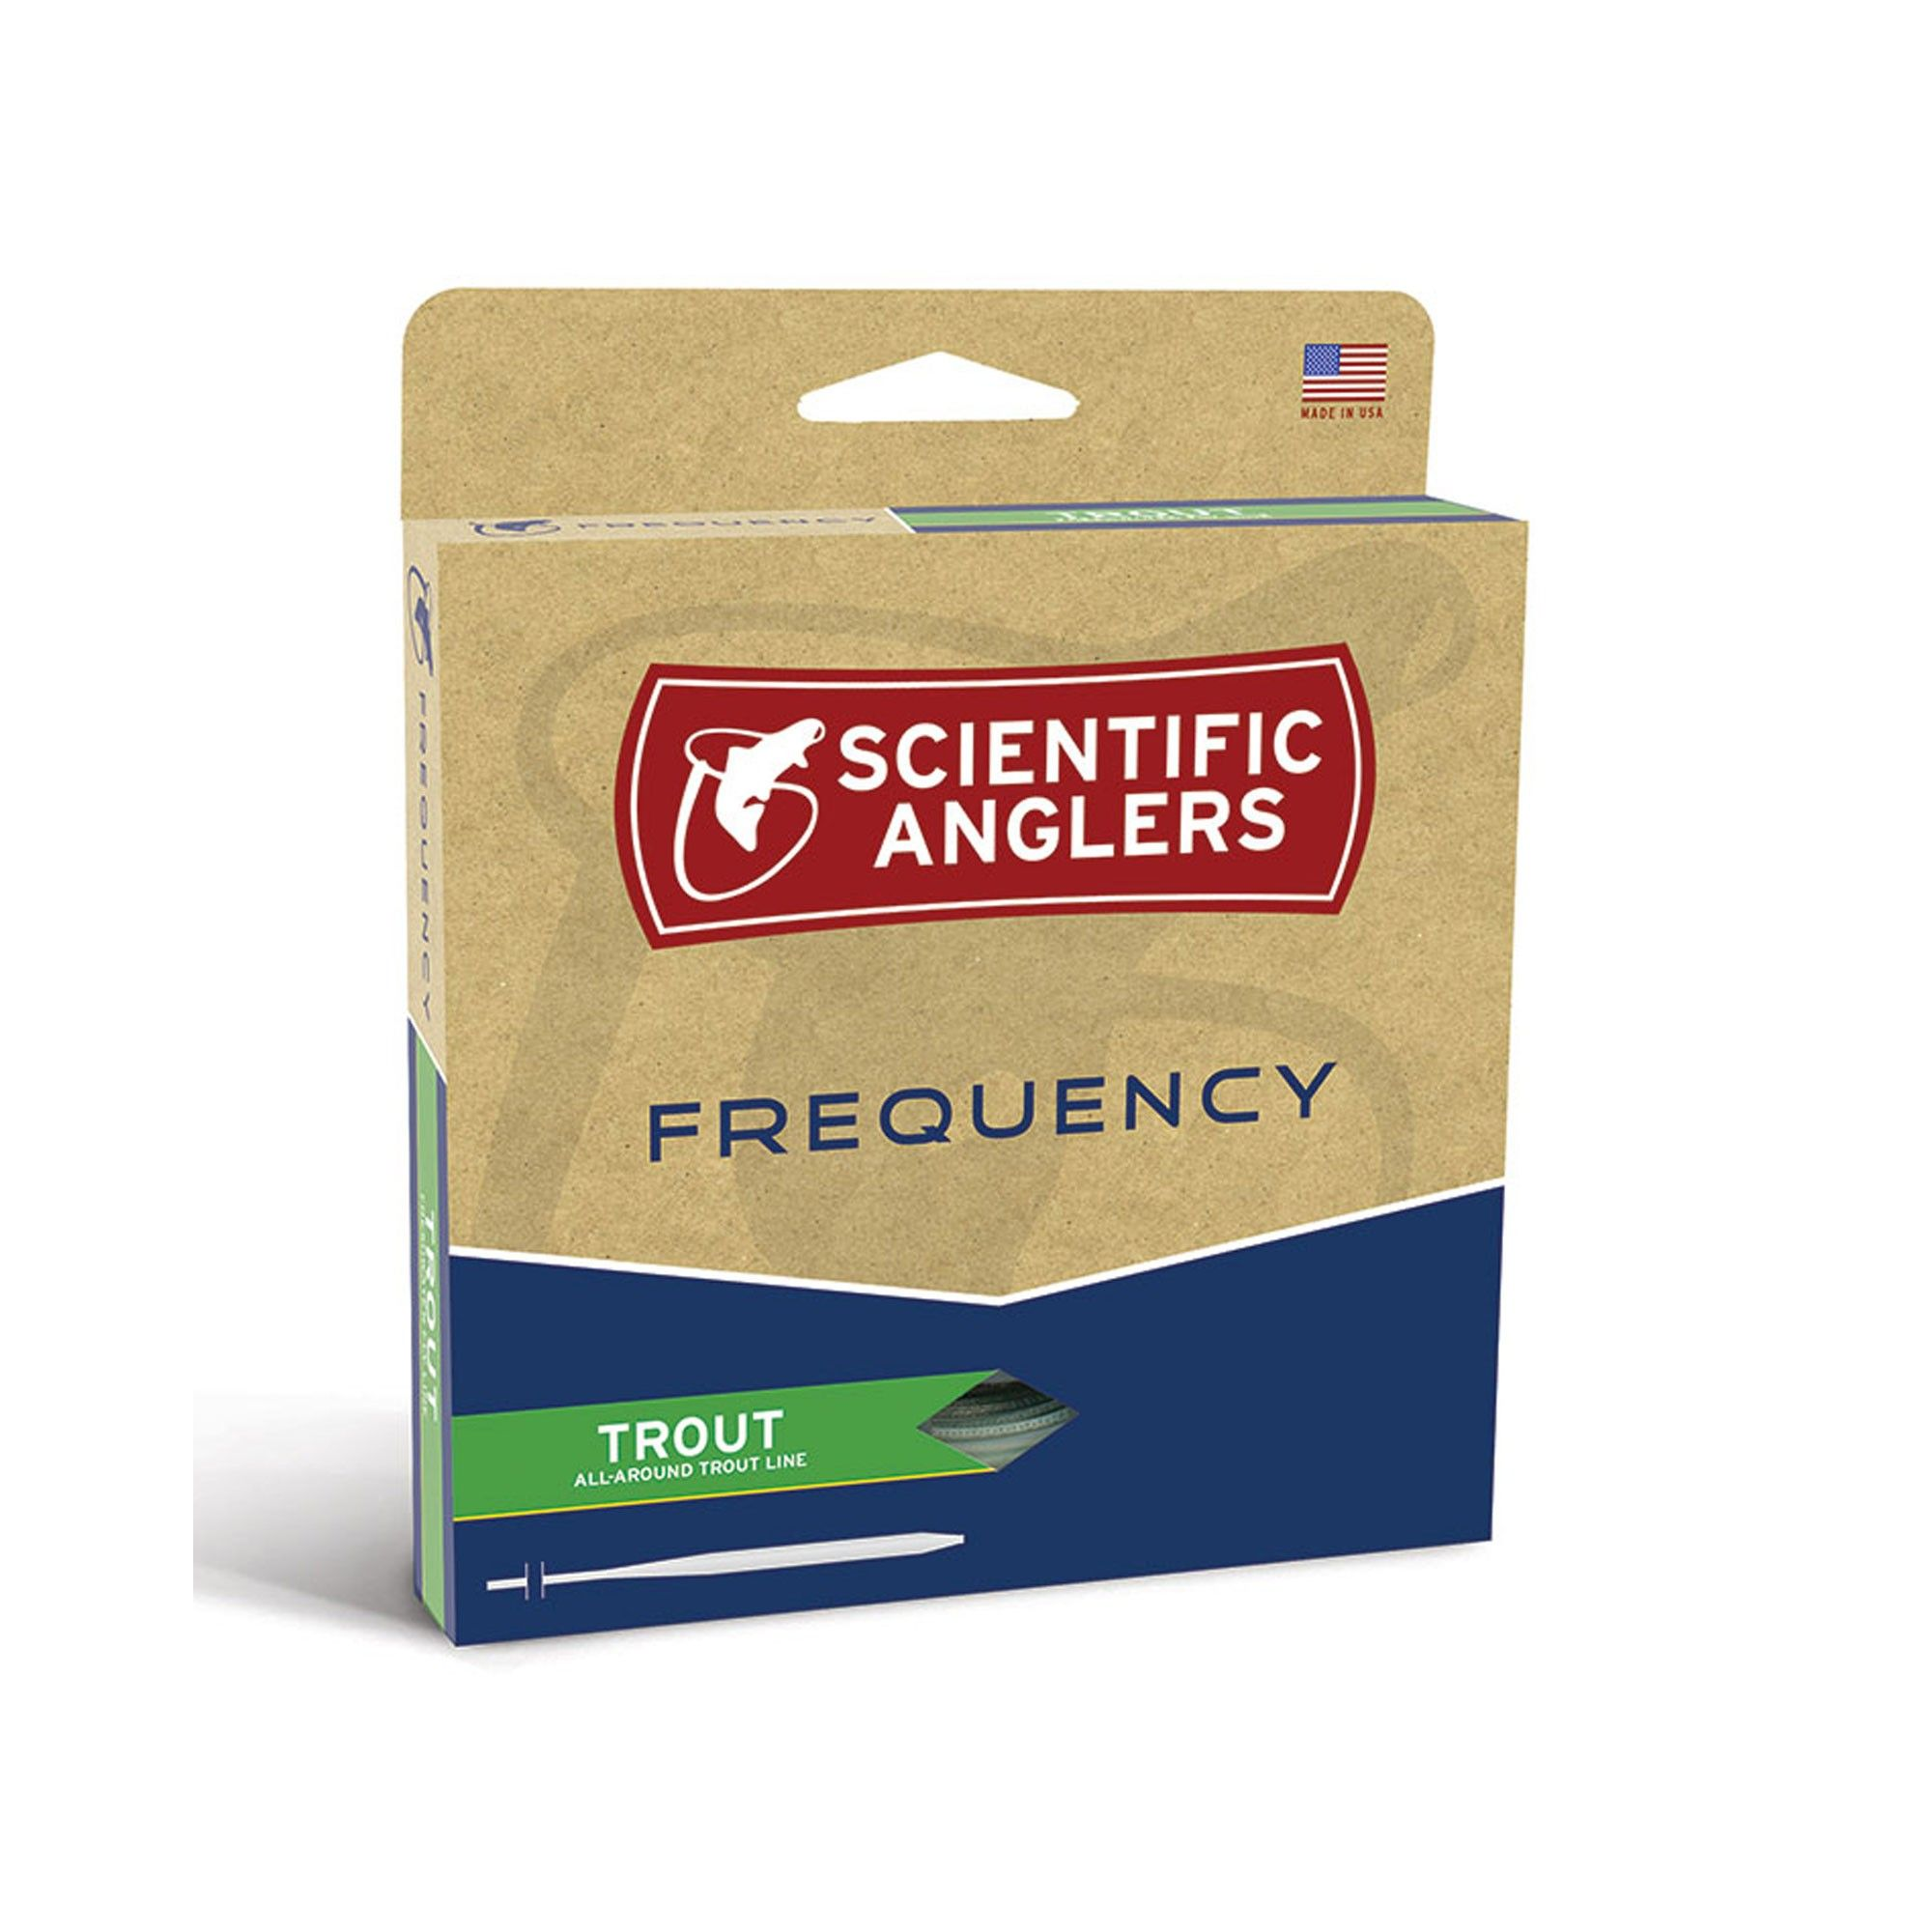 Scientific anglers frequency trout double taper fly line dtf green